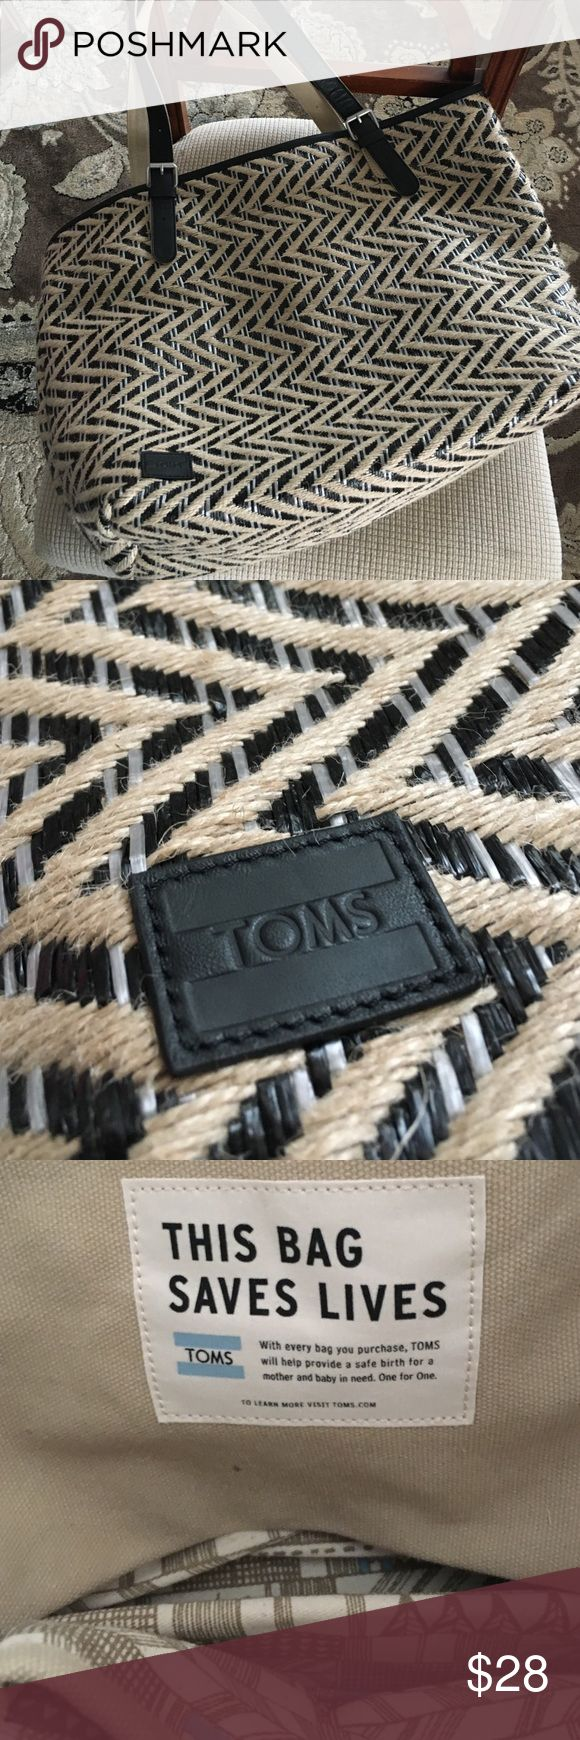 TOMS Bag, like new, never used Black and burlap TOMS bag, excellent condition.  Good size, can be used as a beach bag, diaper bag or for someone who likes to carry a bigger bag.  Black leather handles, lined with extra pockets on the inside. TOMS Bags Shoulder Bags